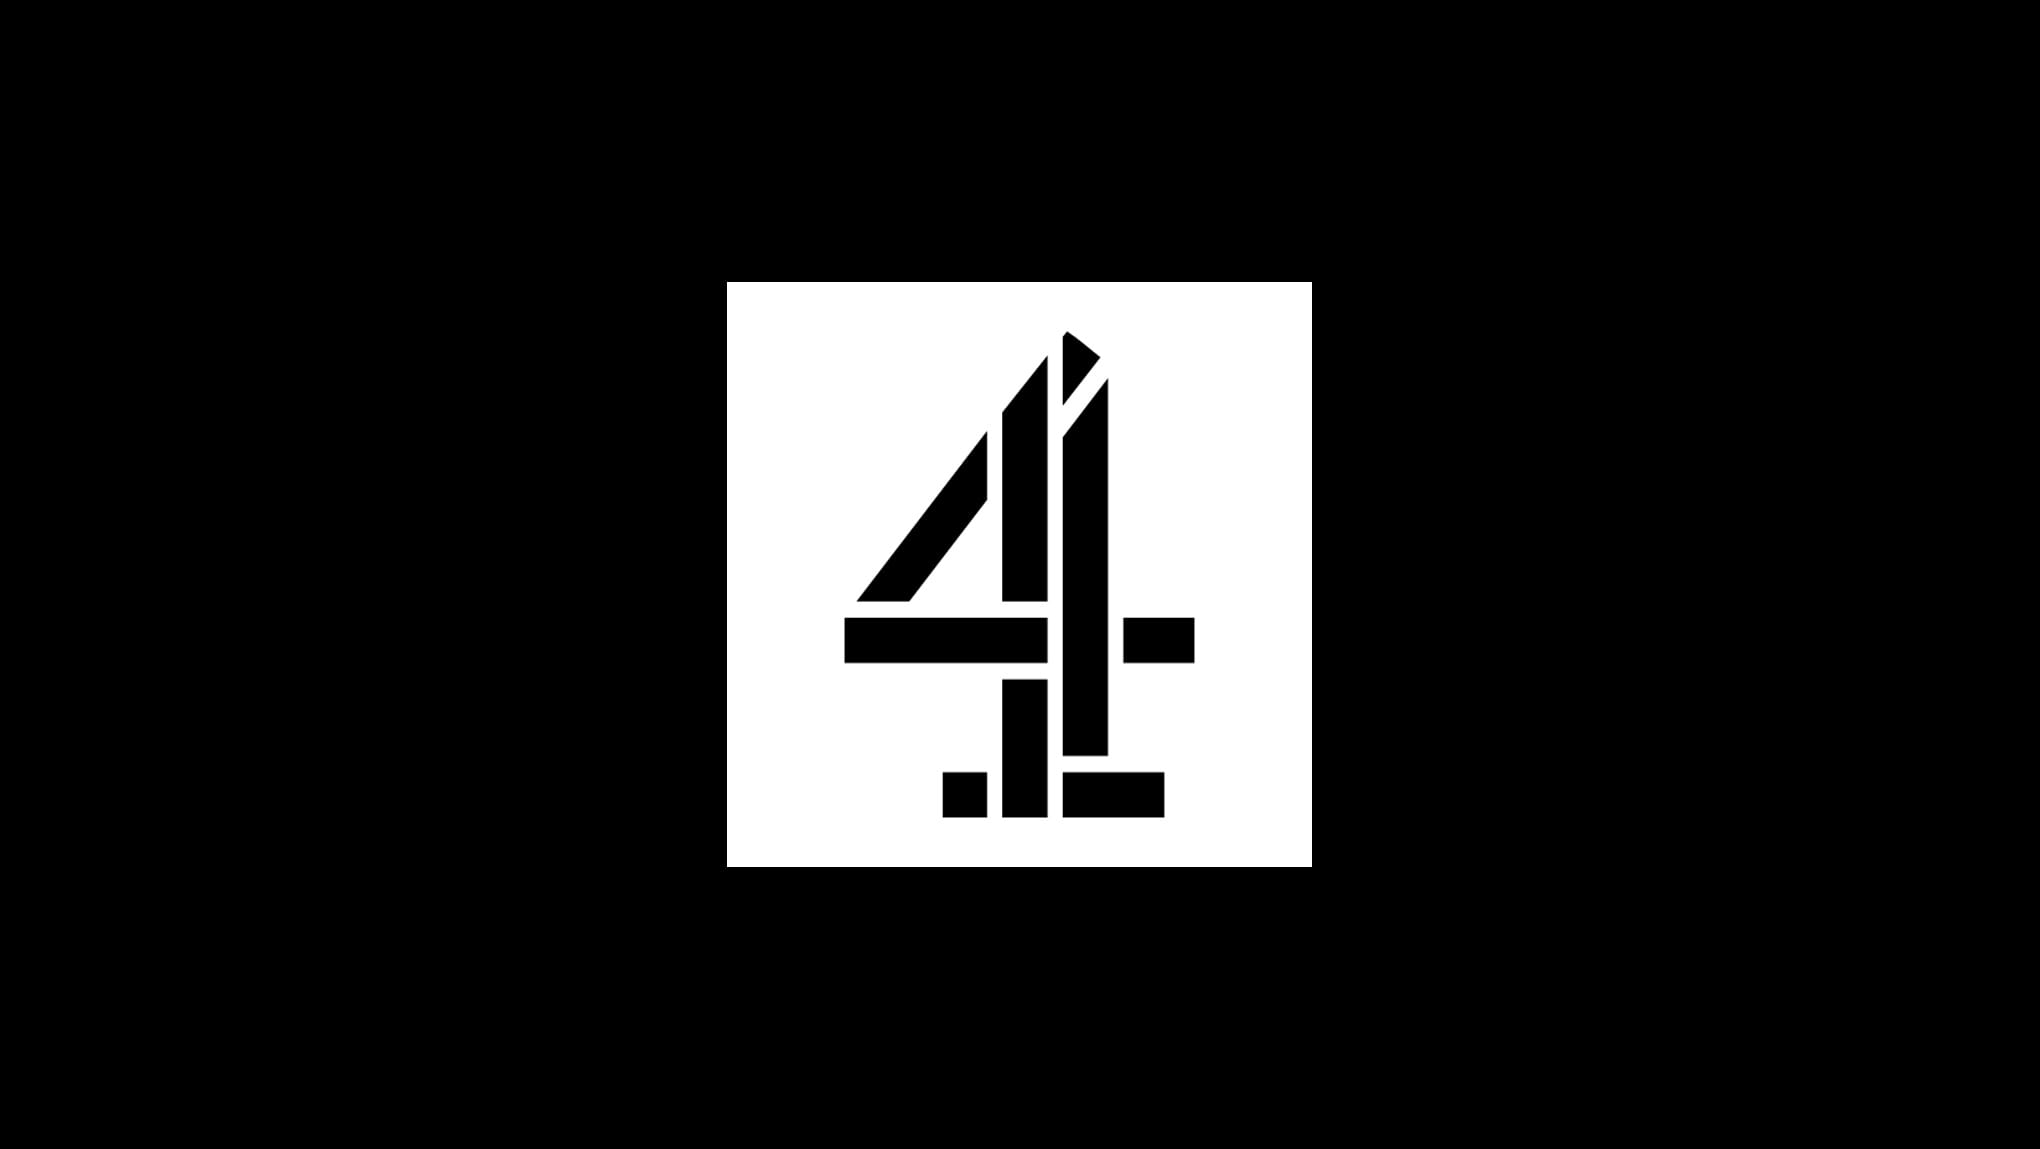 How to Watch Channel 4 in Ireland